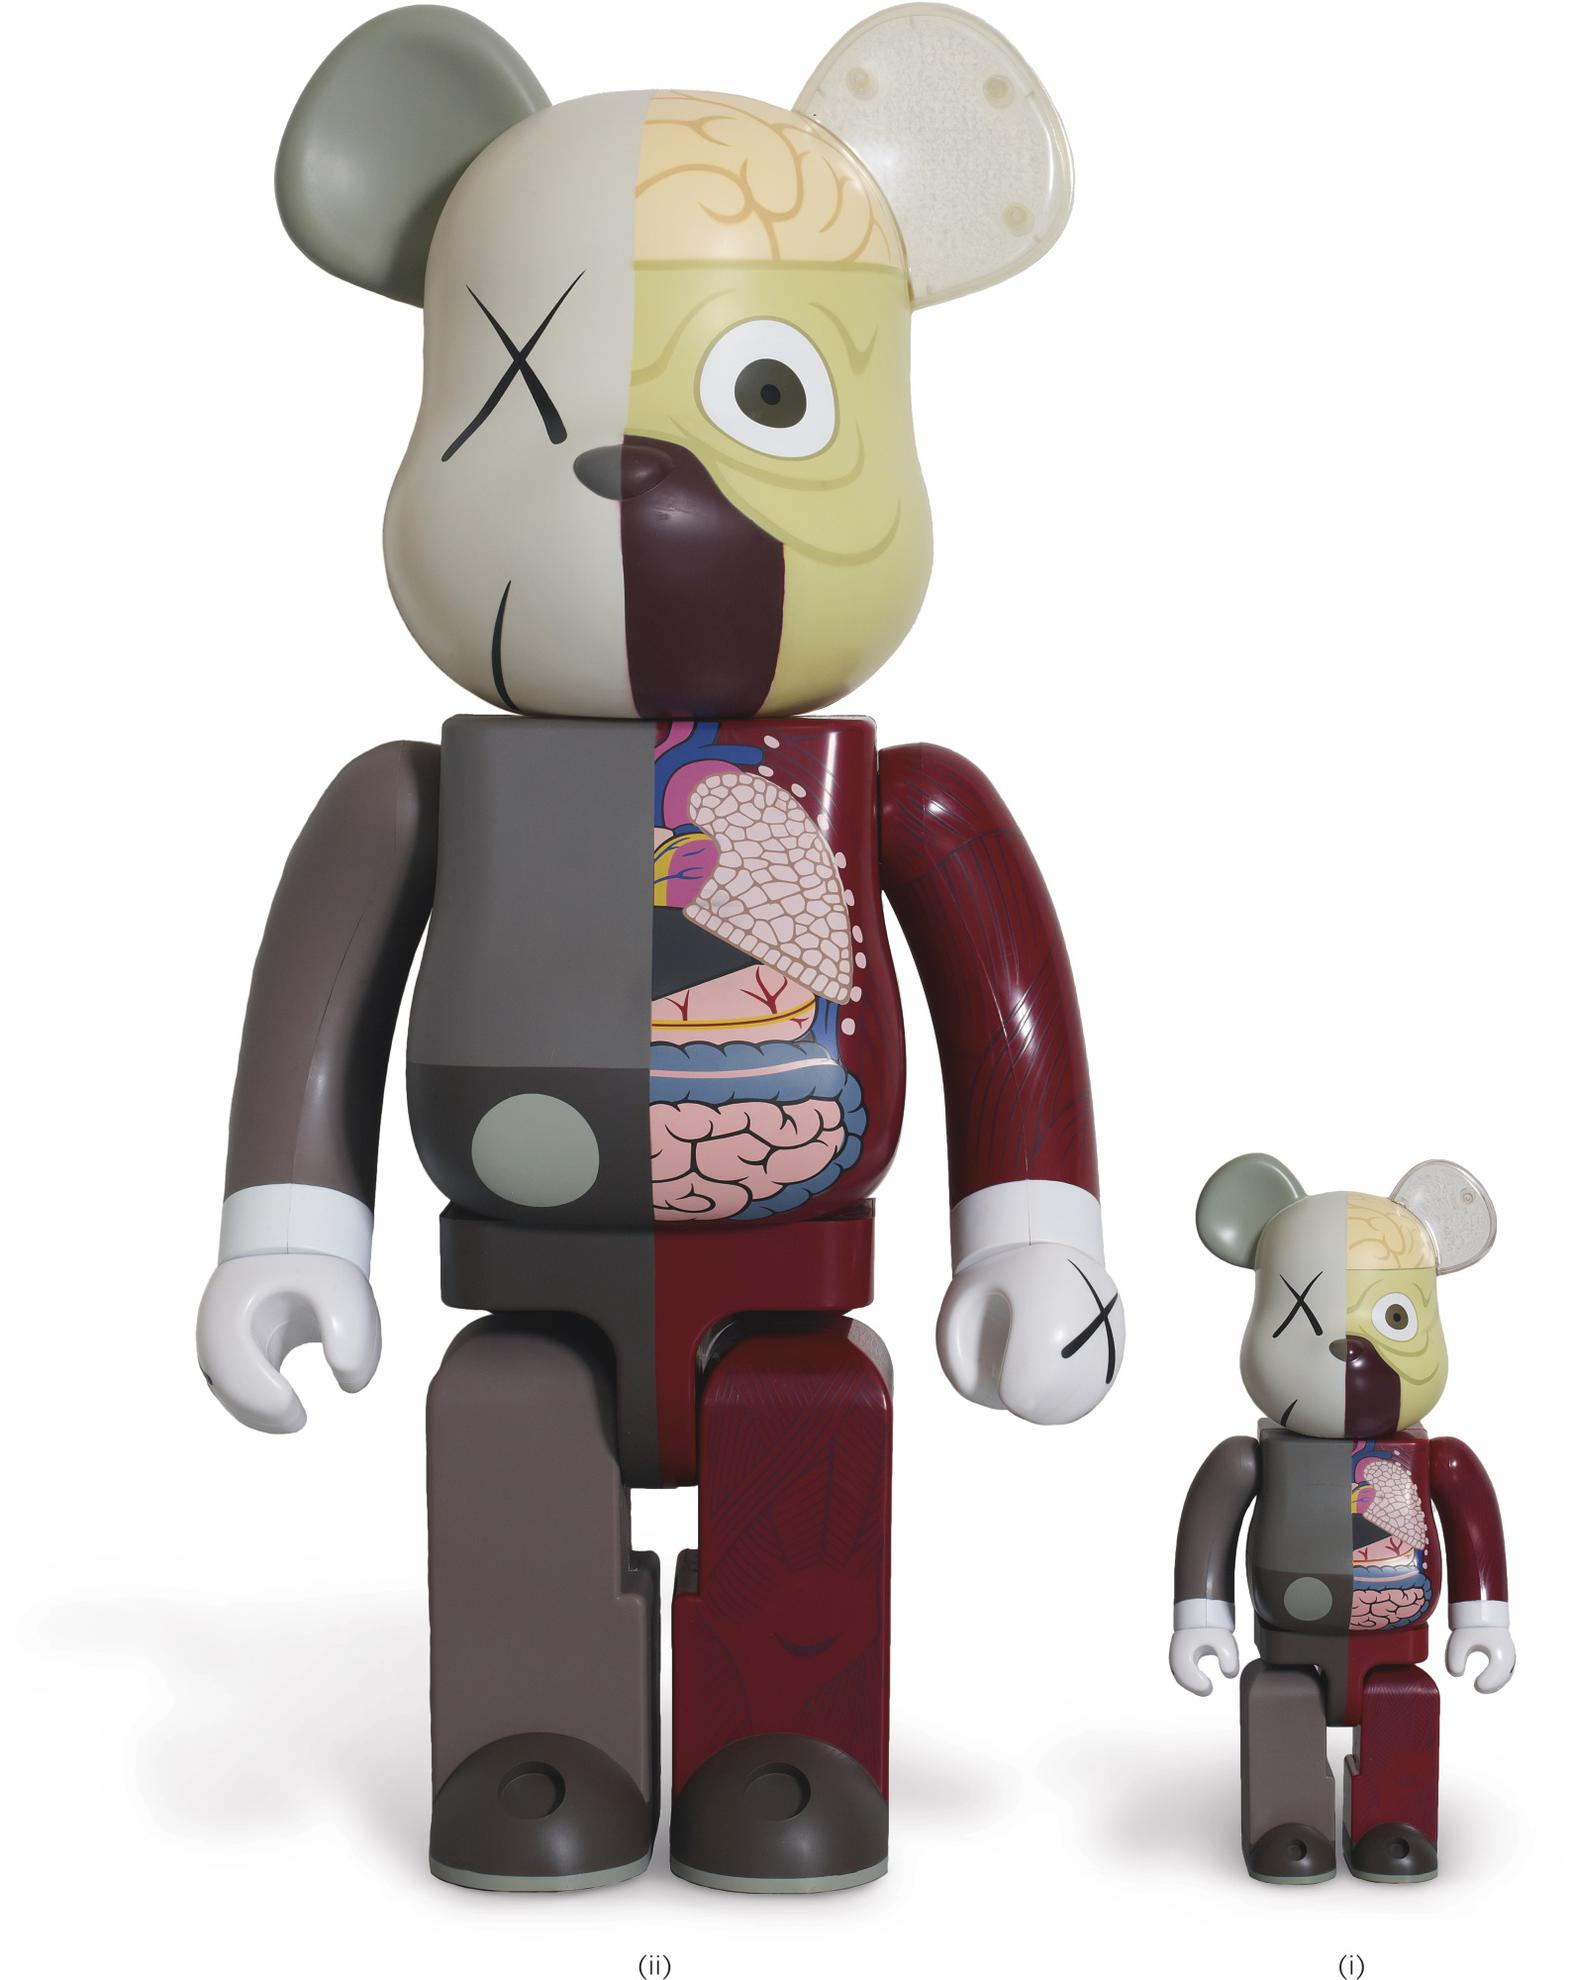 KAWS-(i) 400% Bearbrick Companion/ (ii) 1000% Bearbrick Companion (Two Works)-2009